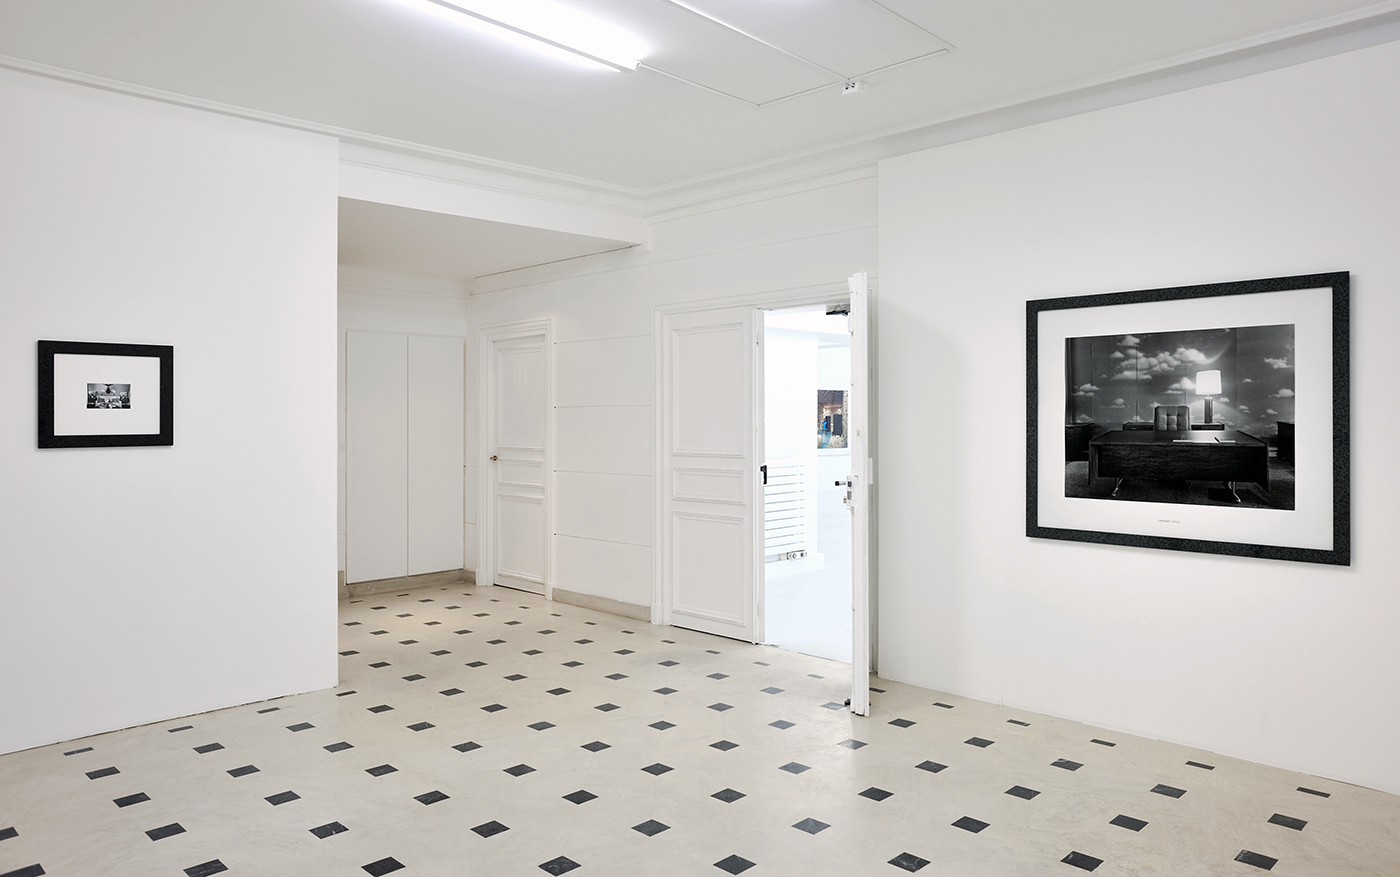 Lynne Cohen - Exhibition view - Un hommage - Galerie in situ - Fabienne Leclerc, Paris, 2015